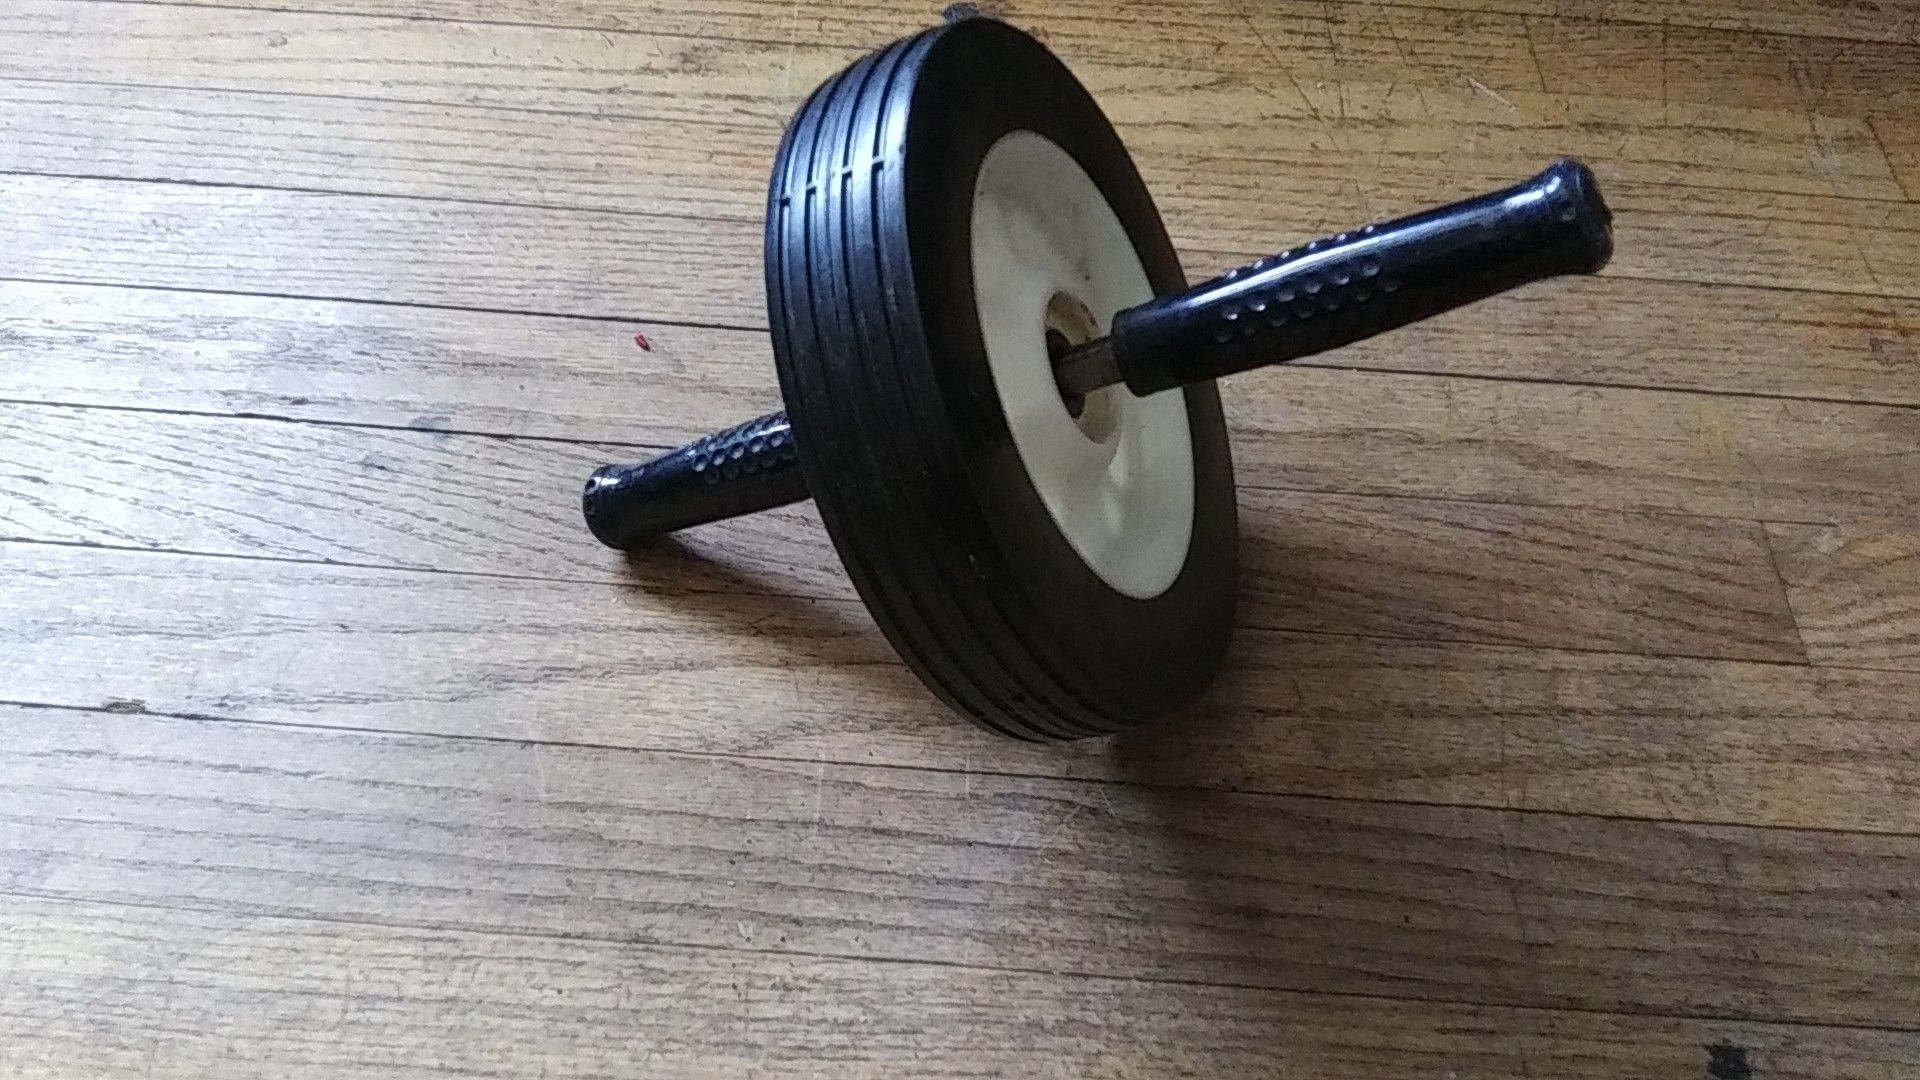 Workout equipment - great for core